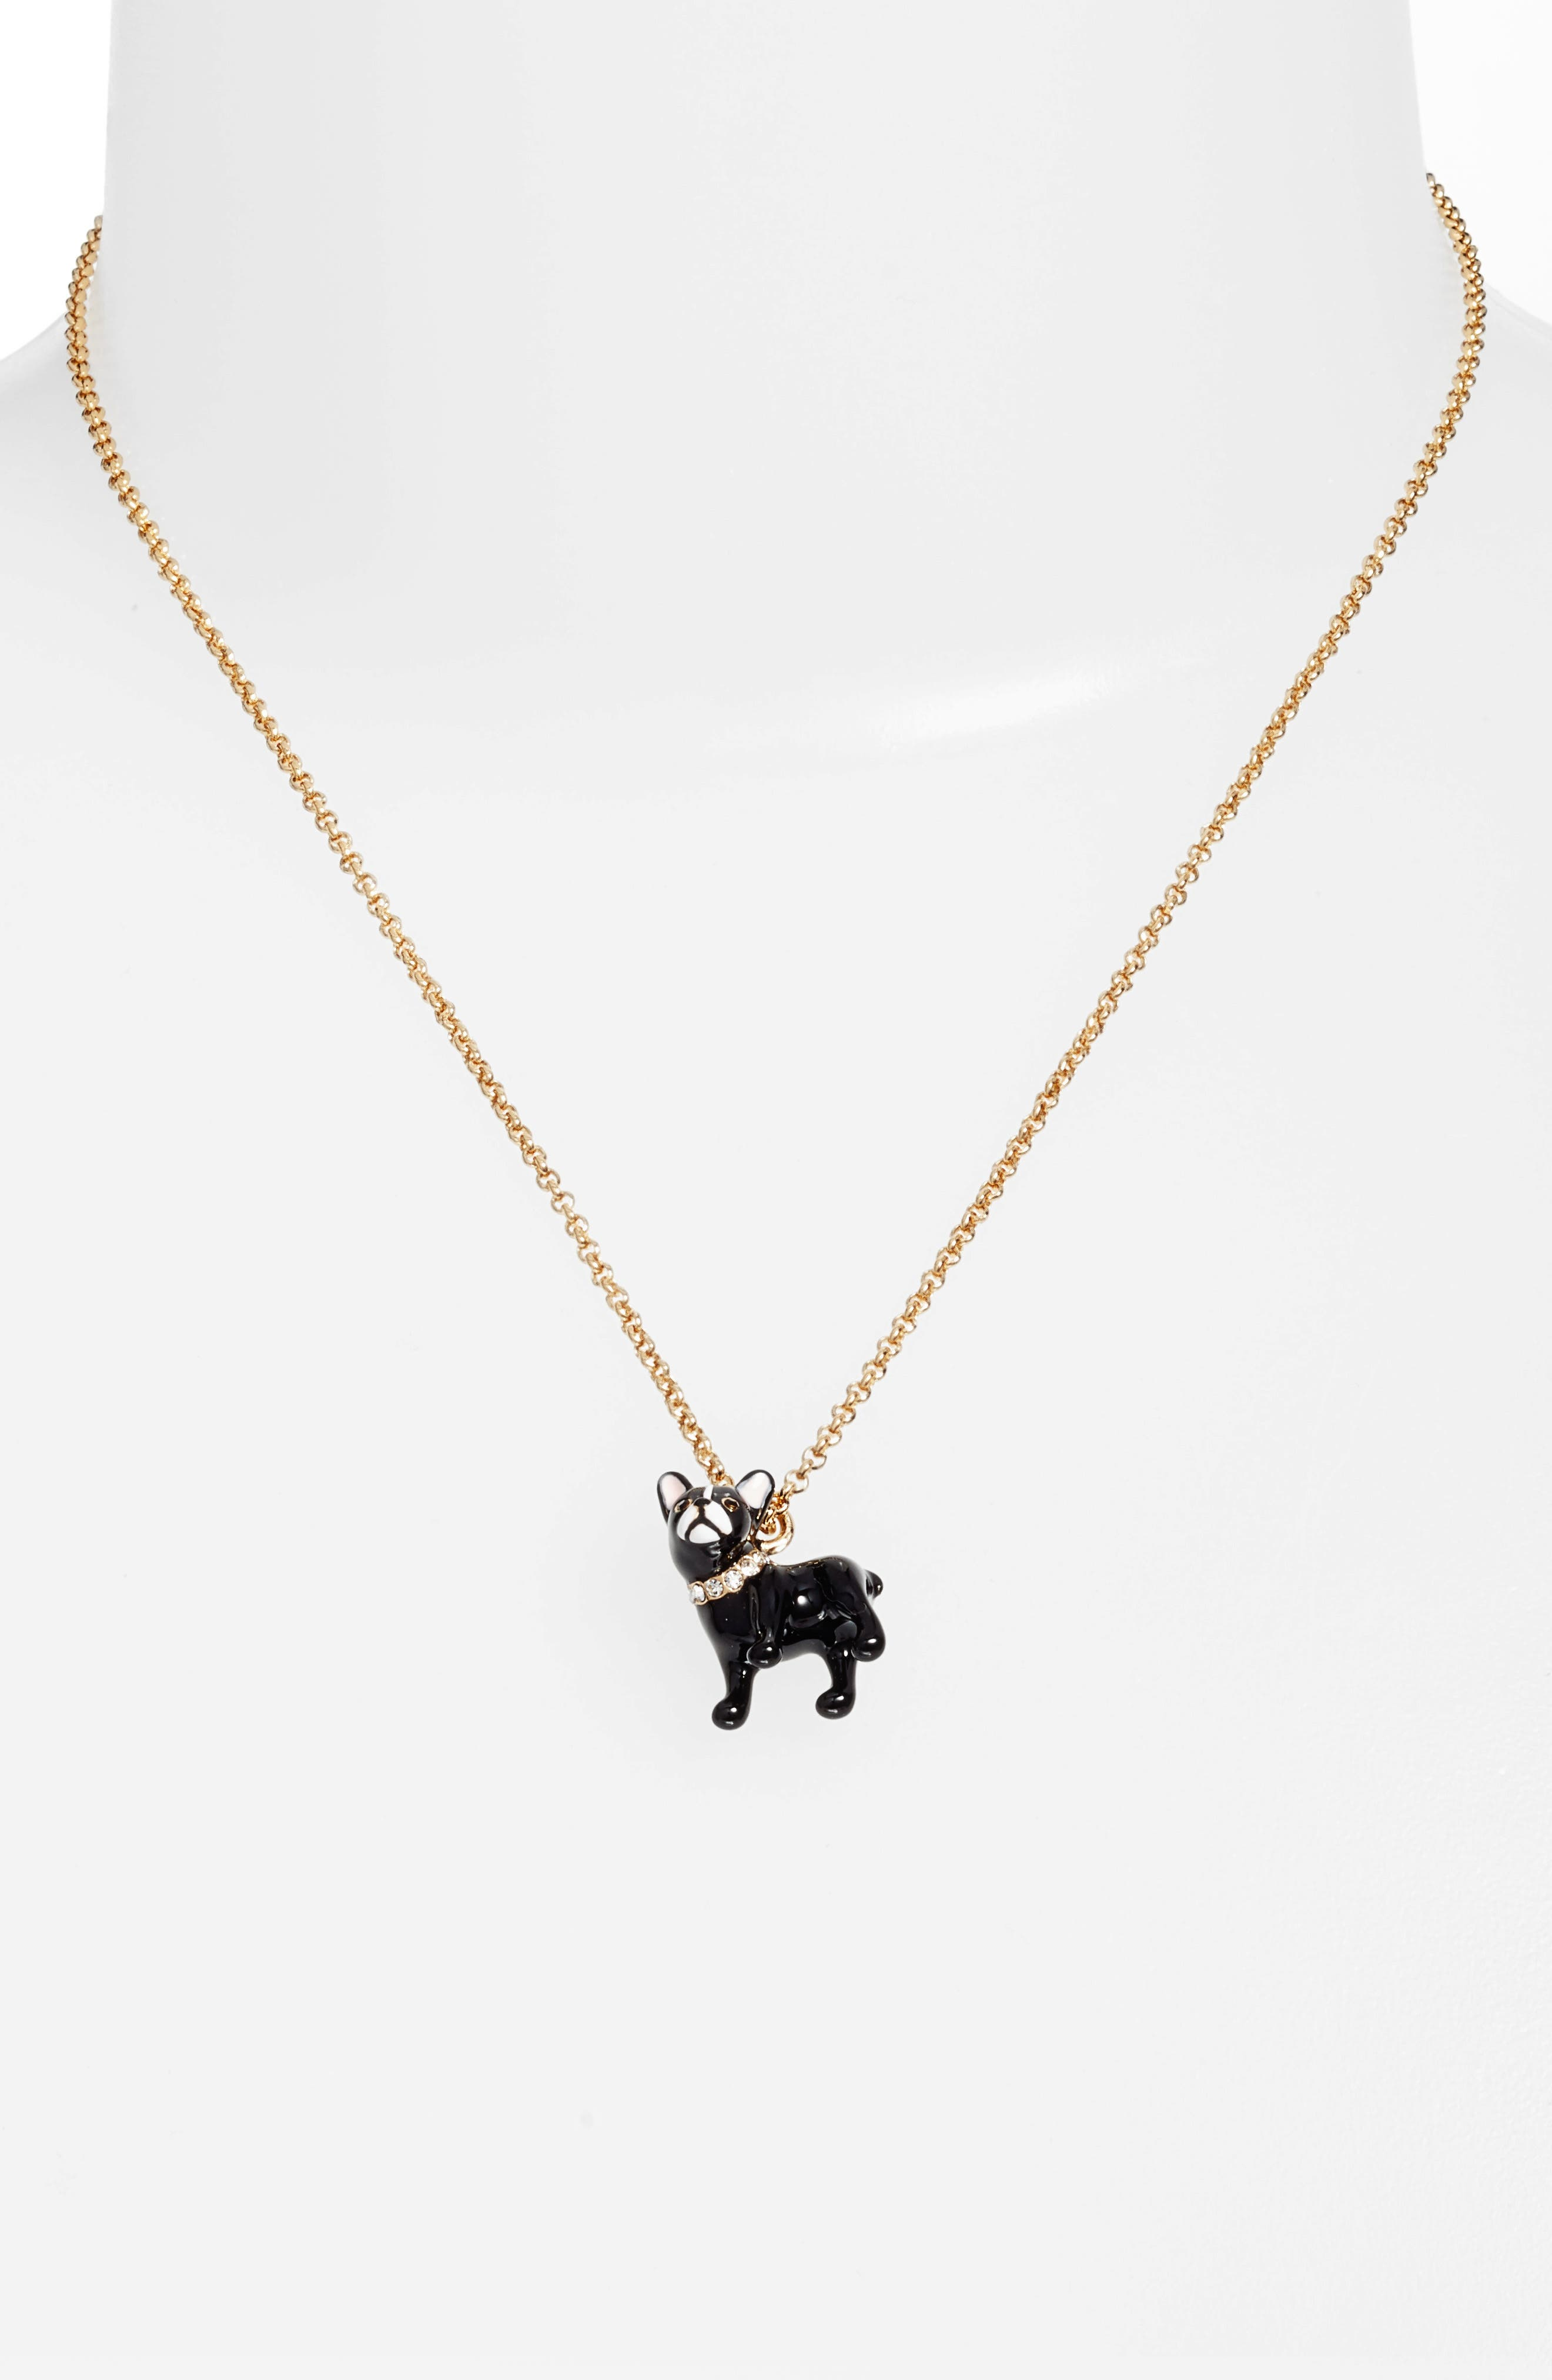 ma cherie antoine dog pendant necklace,                             Alternate thumbnail 2, color,                             710